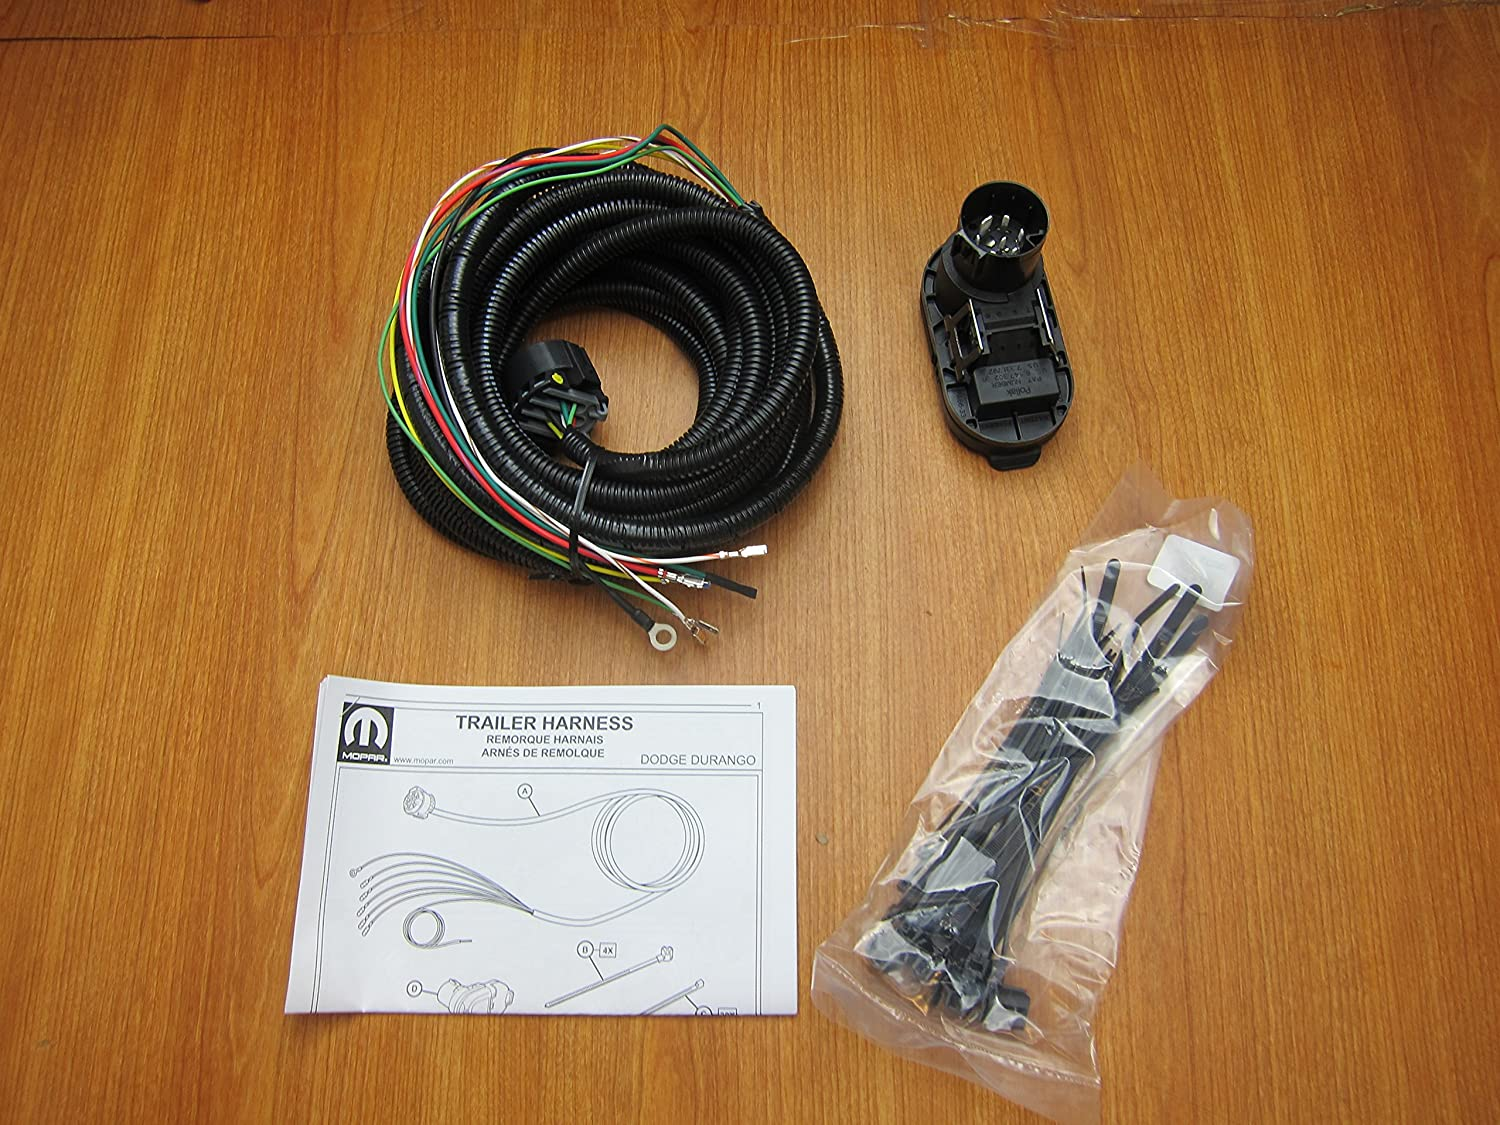 Astounding Amazon Com Dodge Durango Trailer Tow Hitch Wiring Harness Kit Mopar Wiring 101 Archstreekradiomeanderfmnl